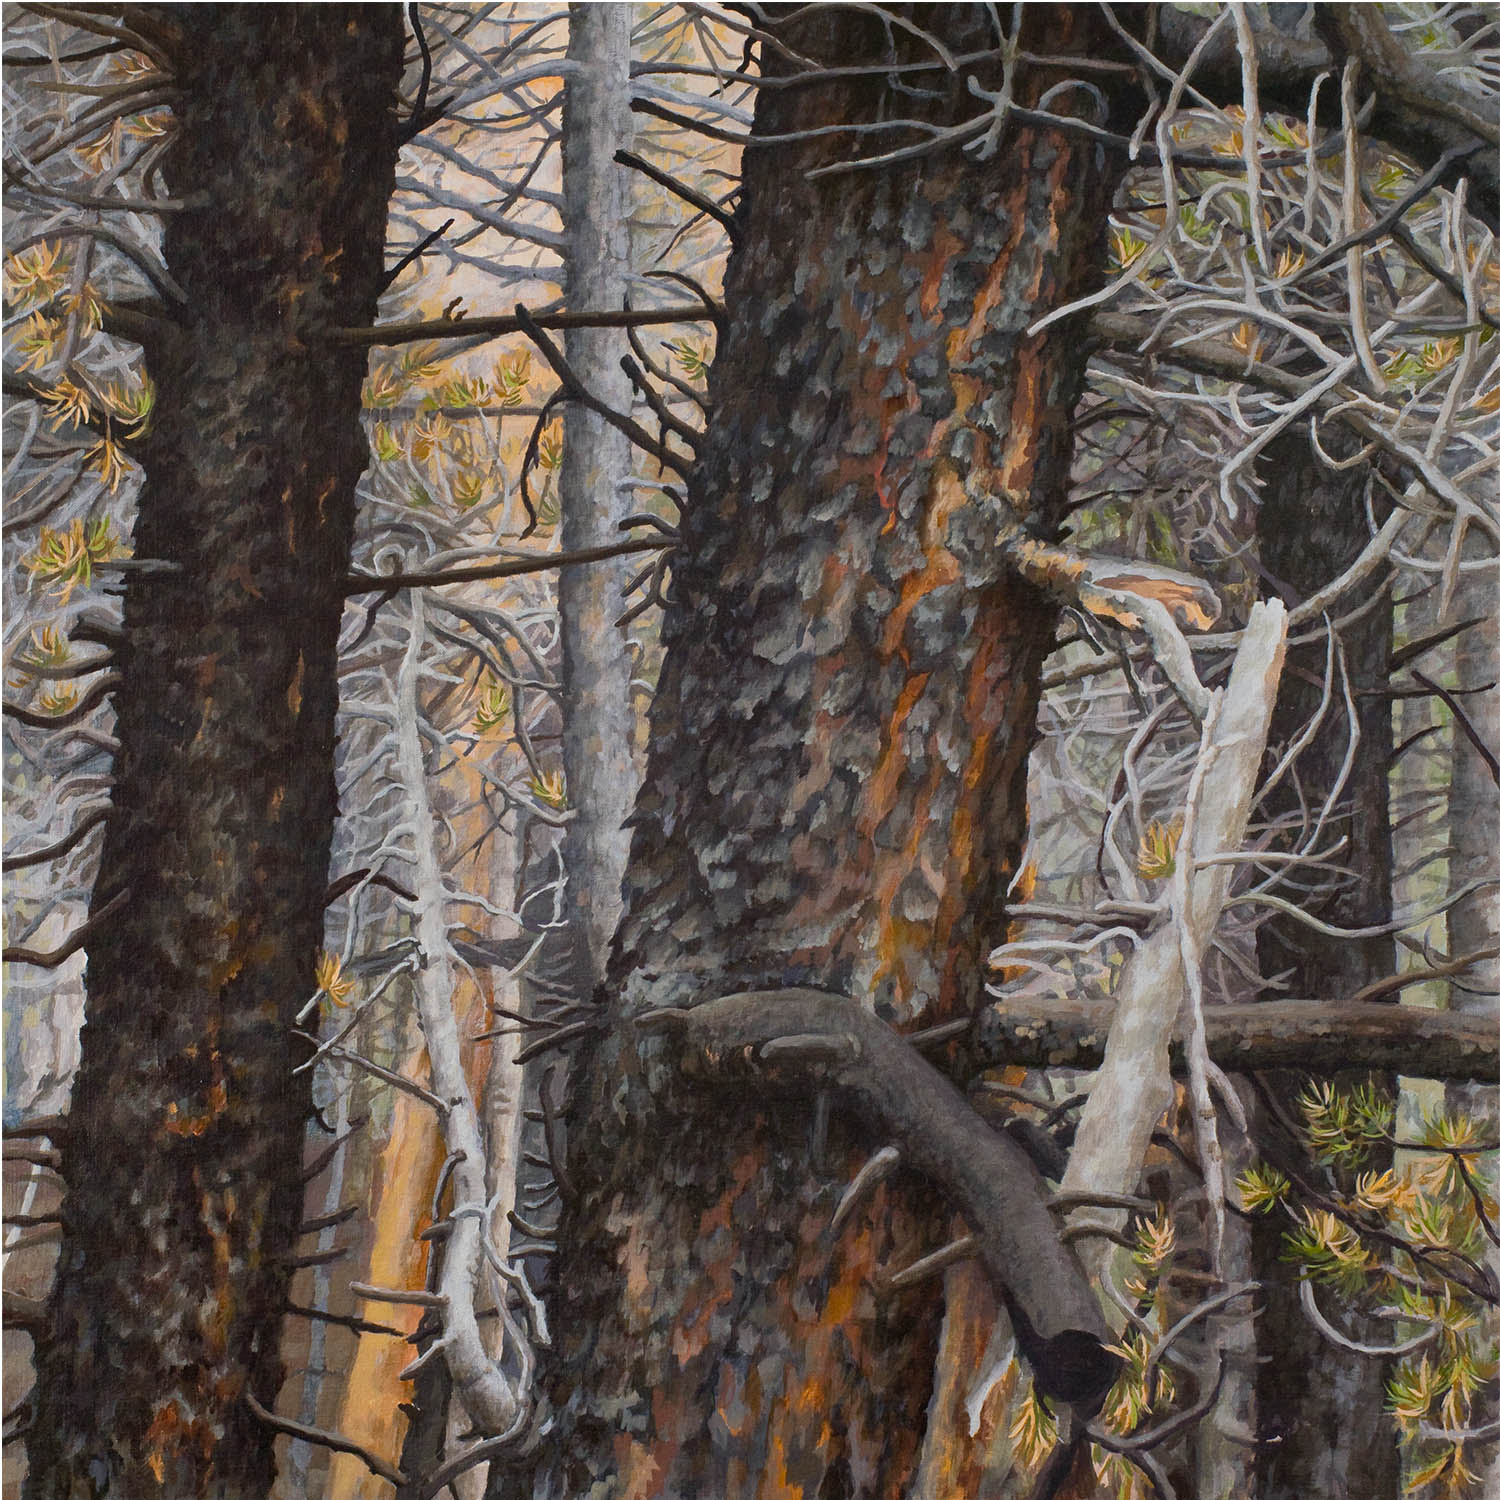 """Lodgepole series #2: Oil on linen canvas over panel 30"""" x 30"""" 2012"""